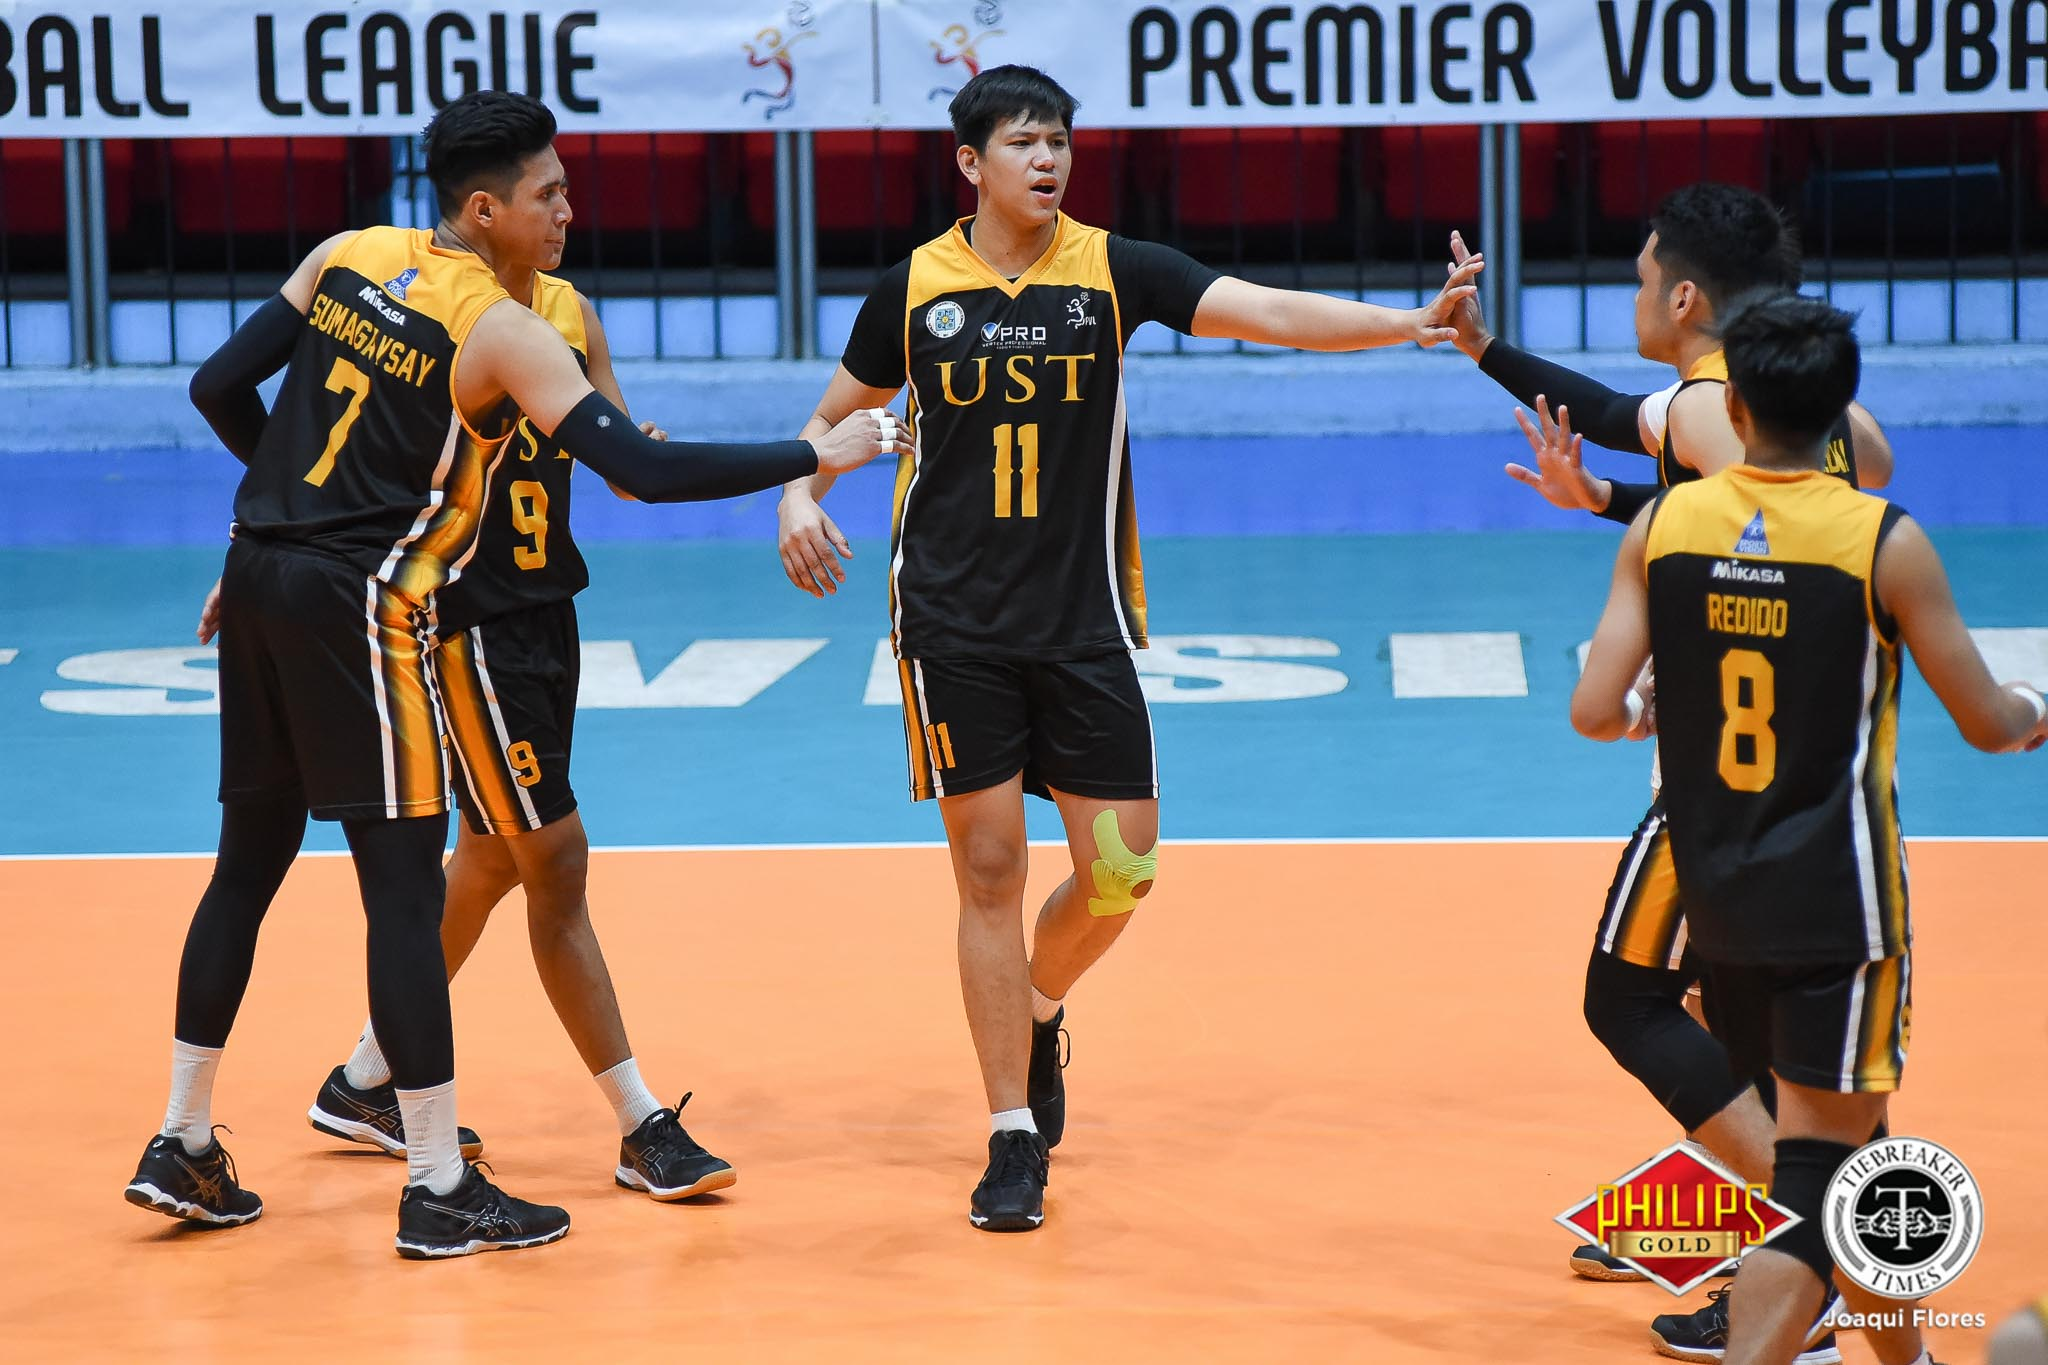 Tiebreaker Times Tiger Spikers subdue Fighting Maroons to clinch semis seat News PVL UP UST Volleyball  UST Men's Volleyball UP Men's Volleyball Timothy Tajanlangit Odjie Mamon MAnuel Medina Mac Millete Kim Sawal Joshua Umandal Jayvee Sumagaysay Hands Chuacuco 2018 PVL Season 2018 PVL Men's Collegiate Conference